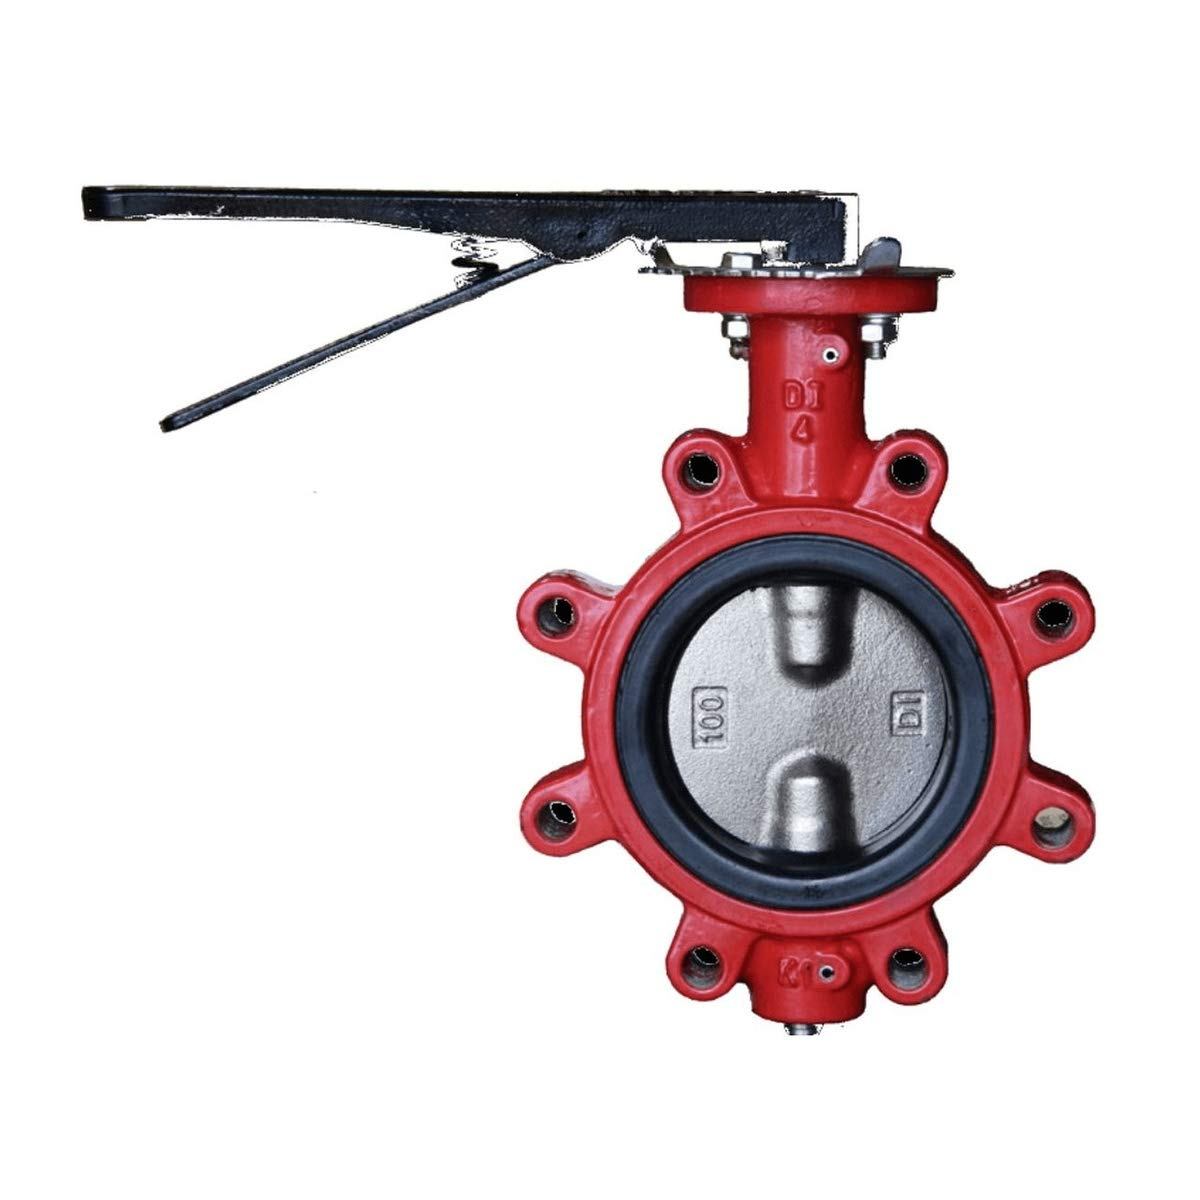 DI NP Disc Buna Seat Size 10 Lug Butterfly Valve